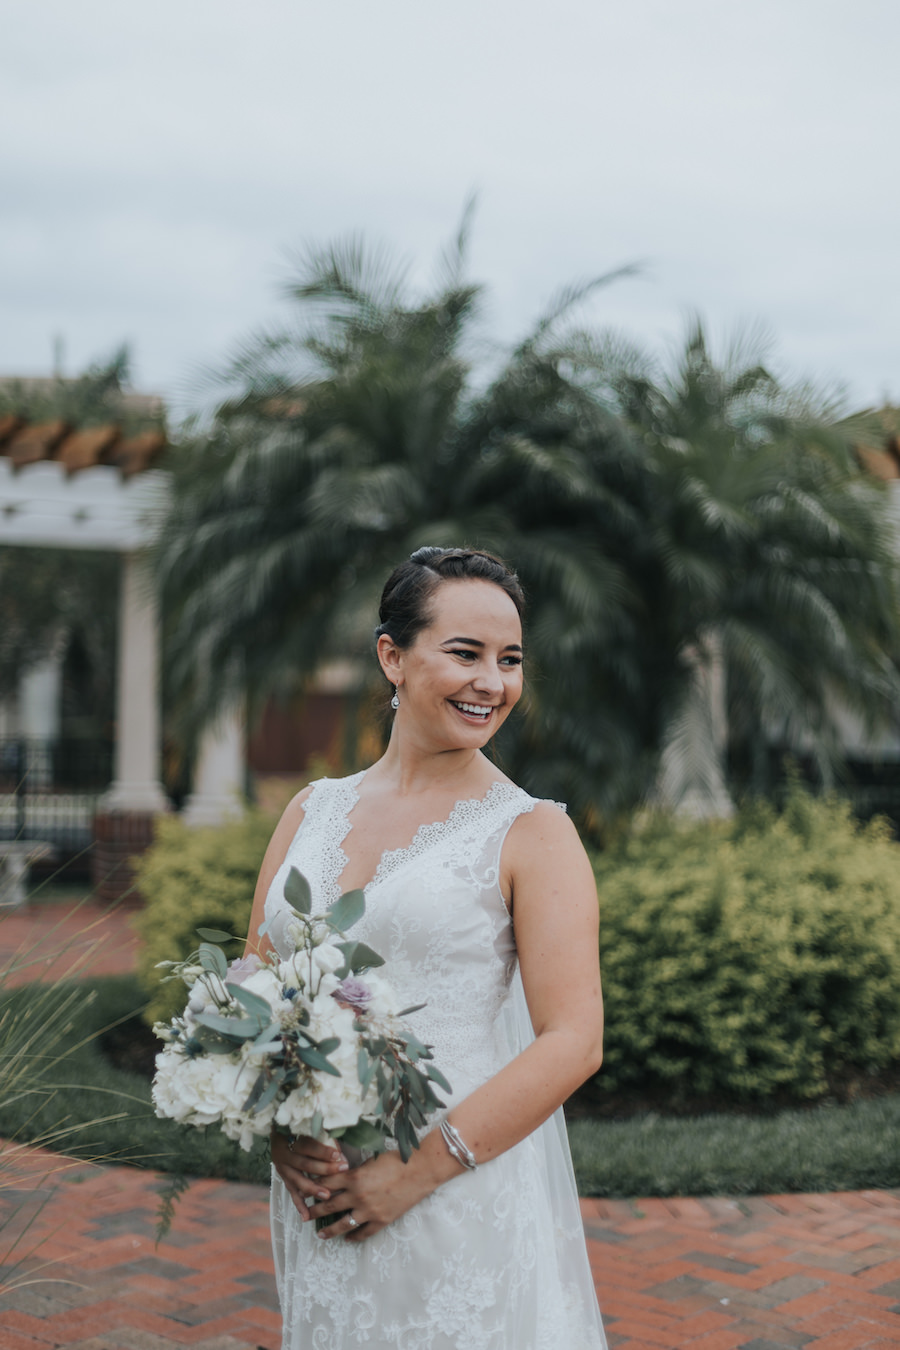 Bridal Wedding Portrait in Sleeveless Ivory Lace Wedding Dress with Ivory, Purple and Greenery Bridal Wedding Bouquet with Eucalyptus | Tampa Bay Wedding Florist Wonderland Floral Art | Tampa Bay Videographer Bonnie Newman Creative